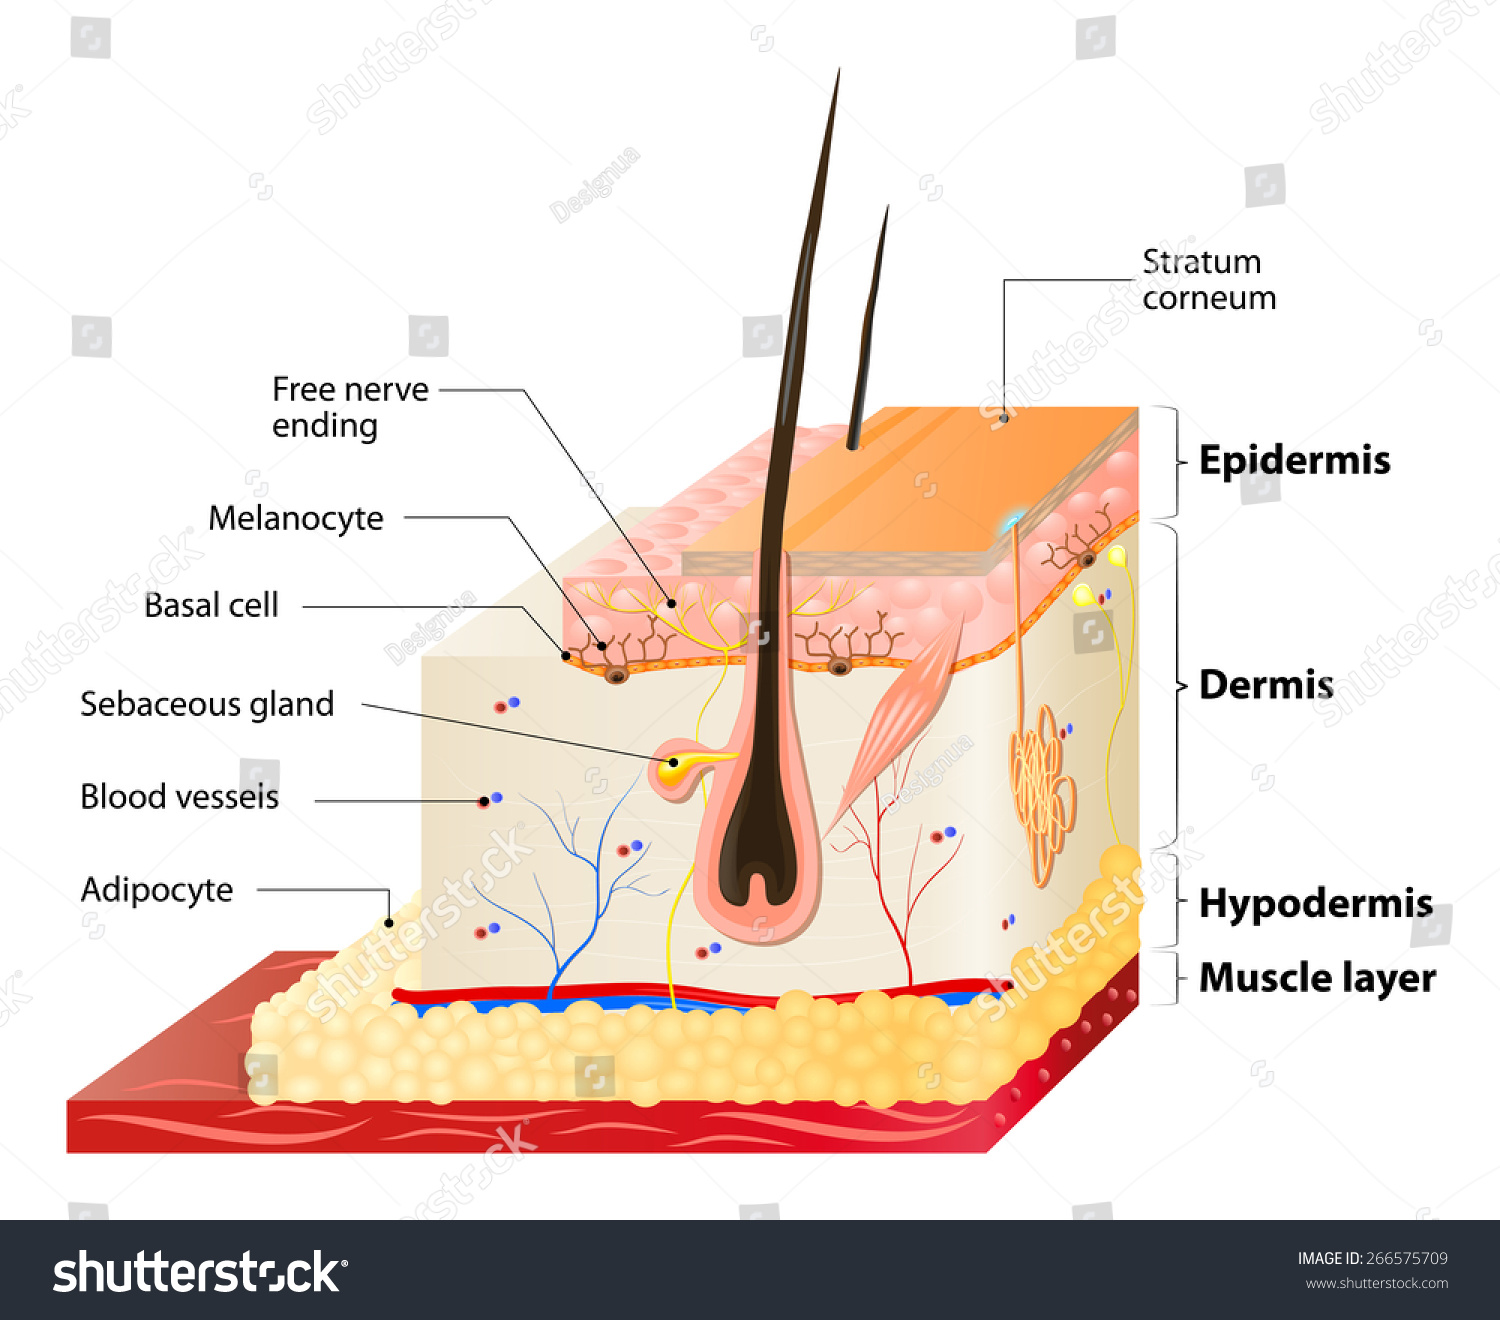 Burning Scalp Hair Loss With likewise Leishmania Donovani additionally 220px Hair follicle Nb Svg likewise Dermal Papilla Hair Follicle besides Epidermis Dermis And Subcutaneous Layers Of Skin. on hair follicle